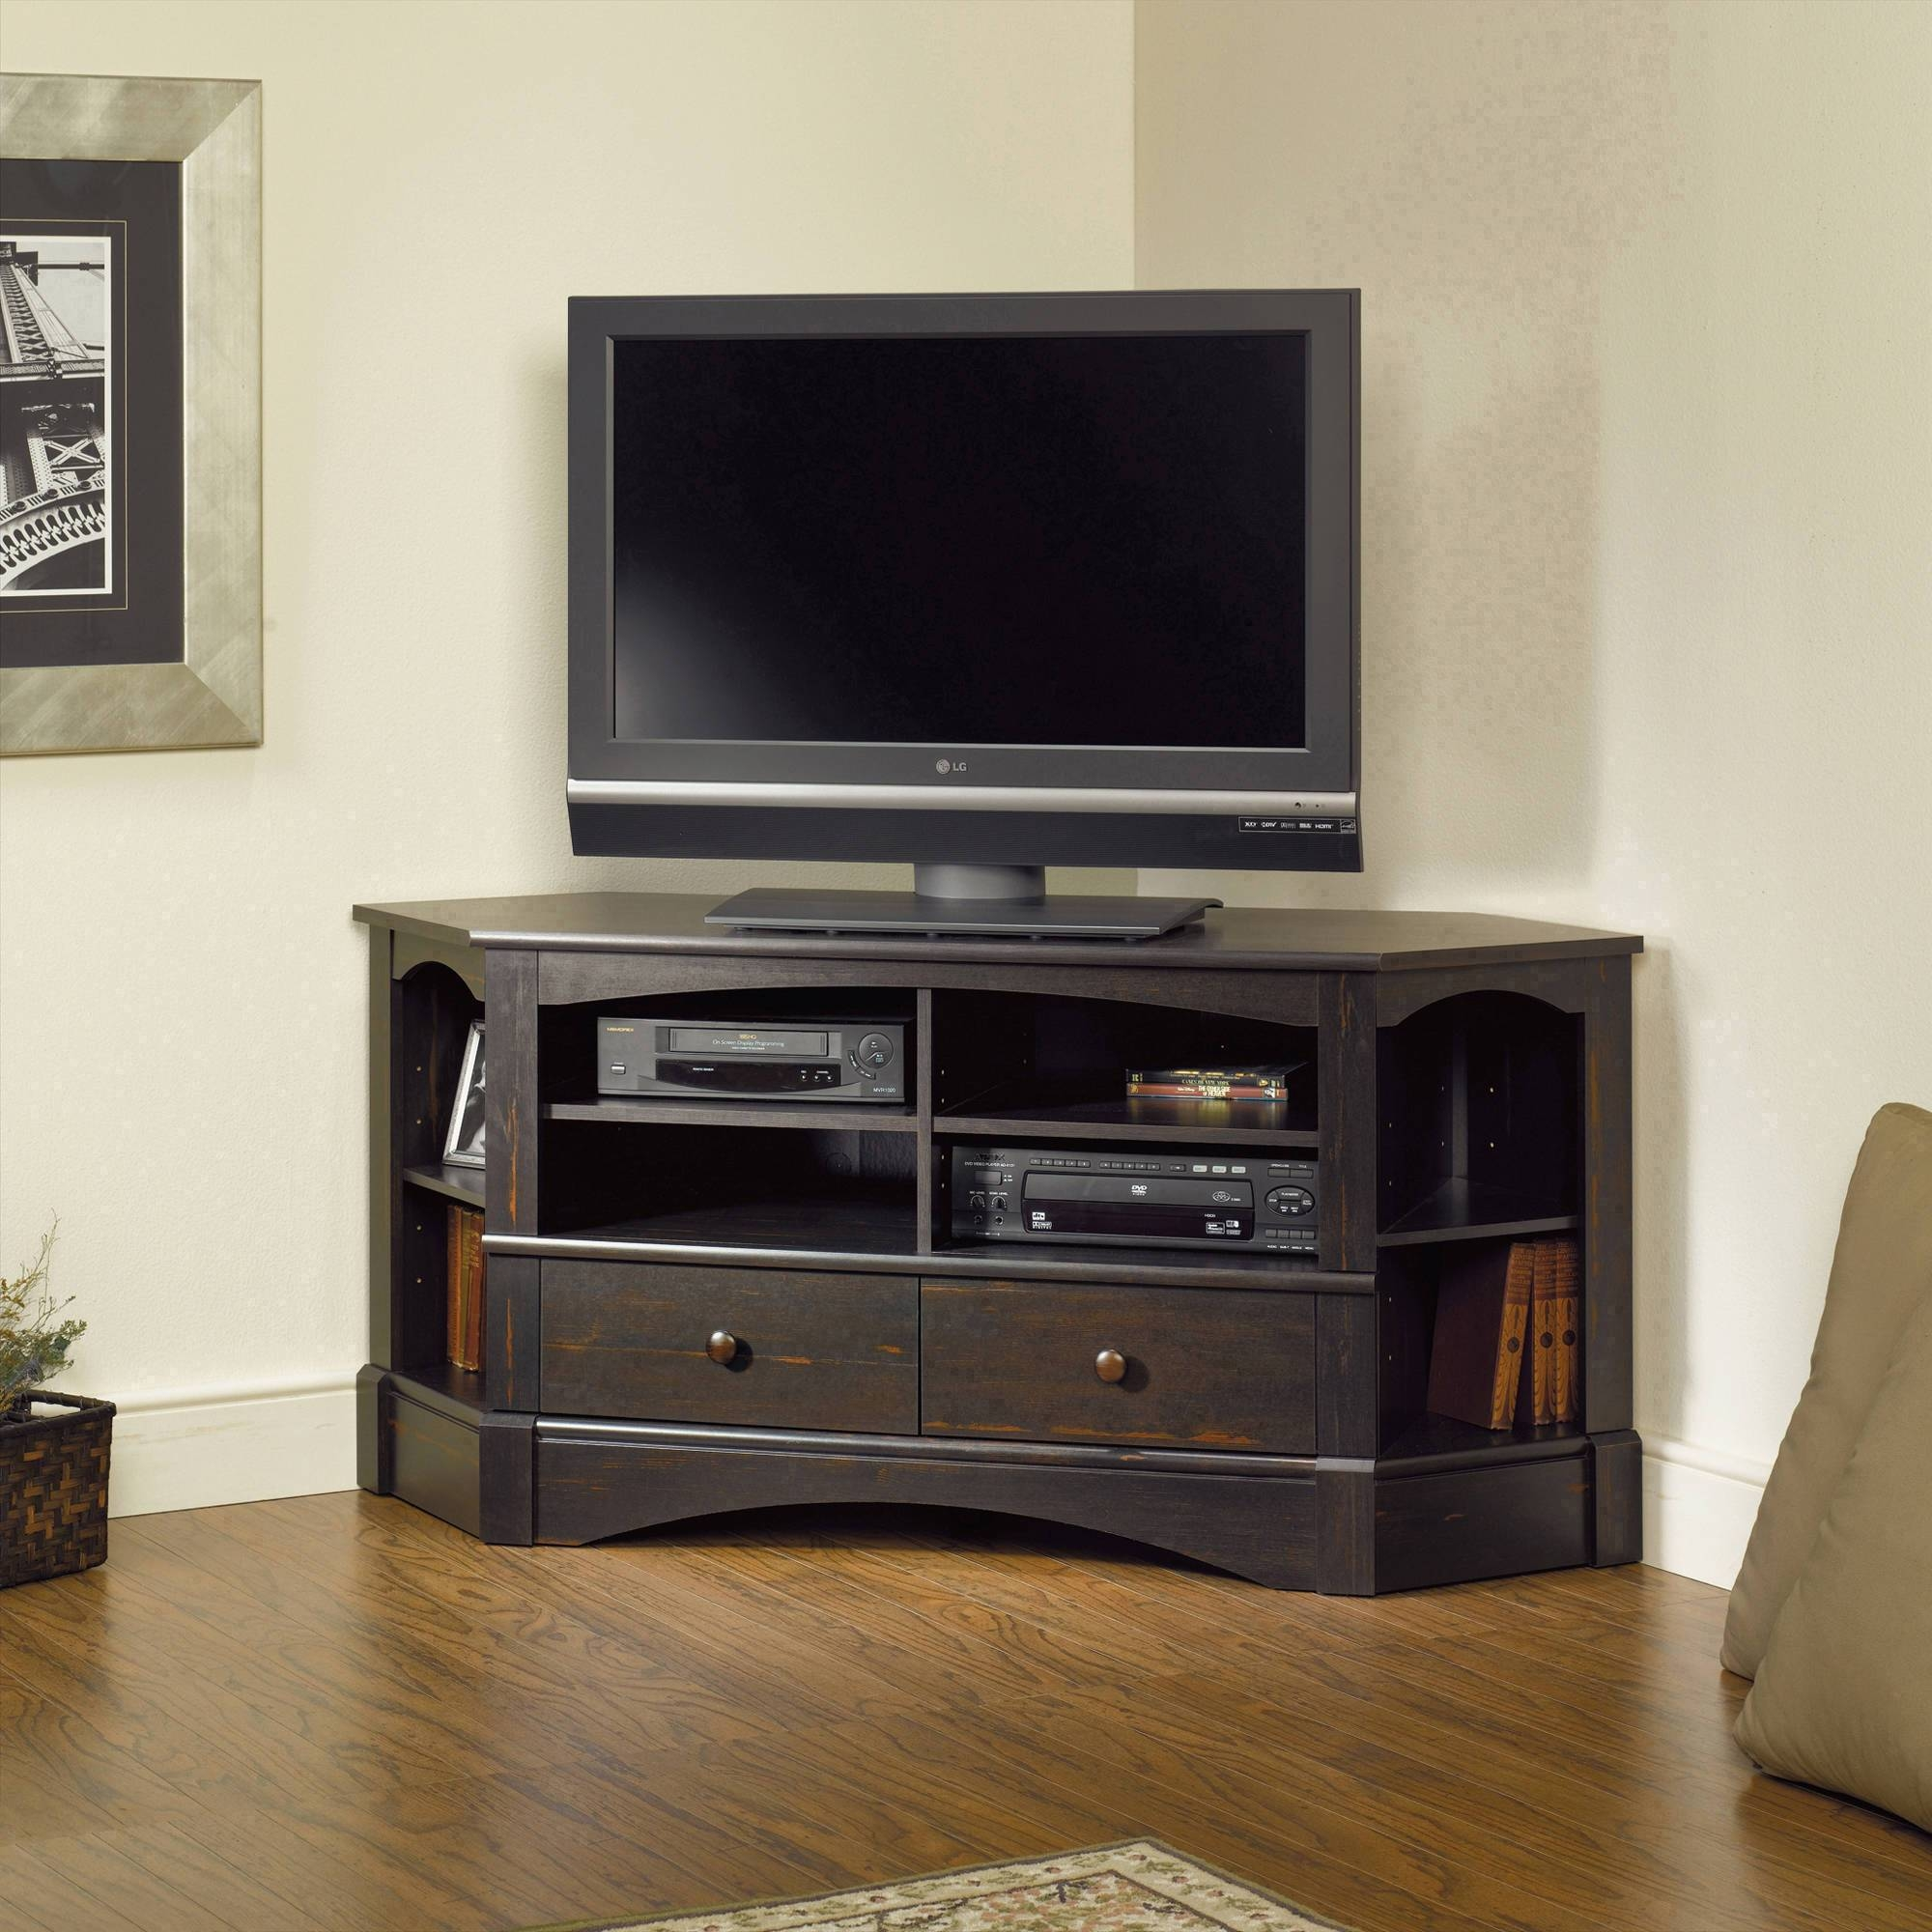 "Sauder Black Tv Stand For Tvs With Bases Up To 39"" - Walmart with regard to Como Tv Stands (Image 9 of 15)"